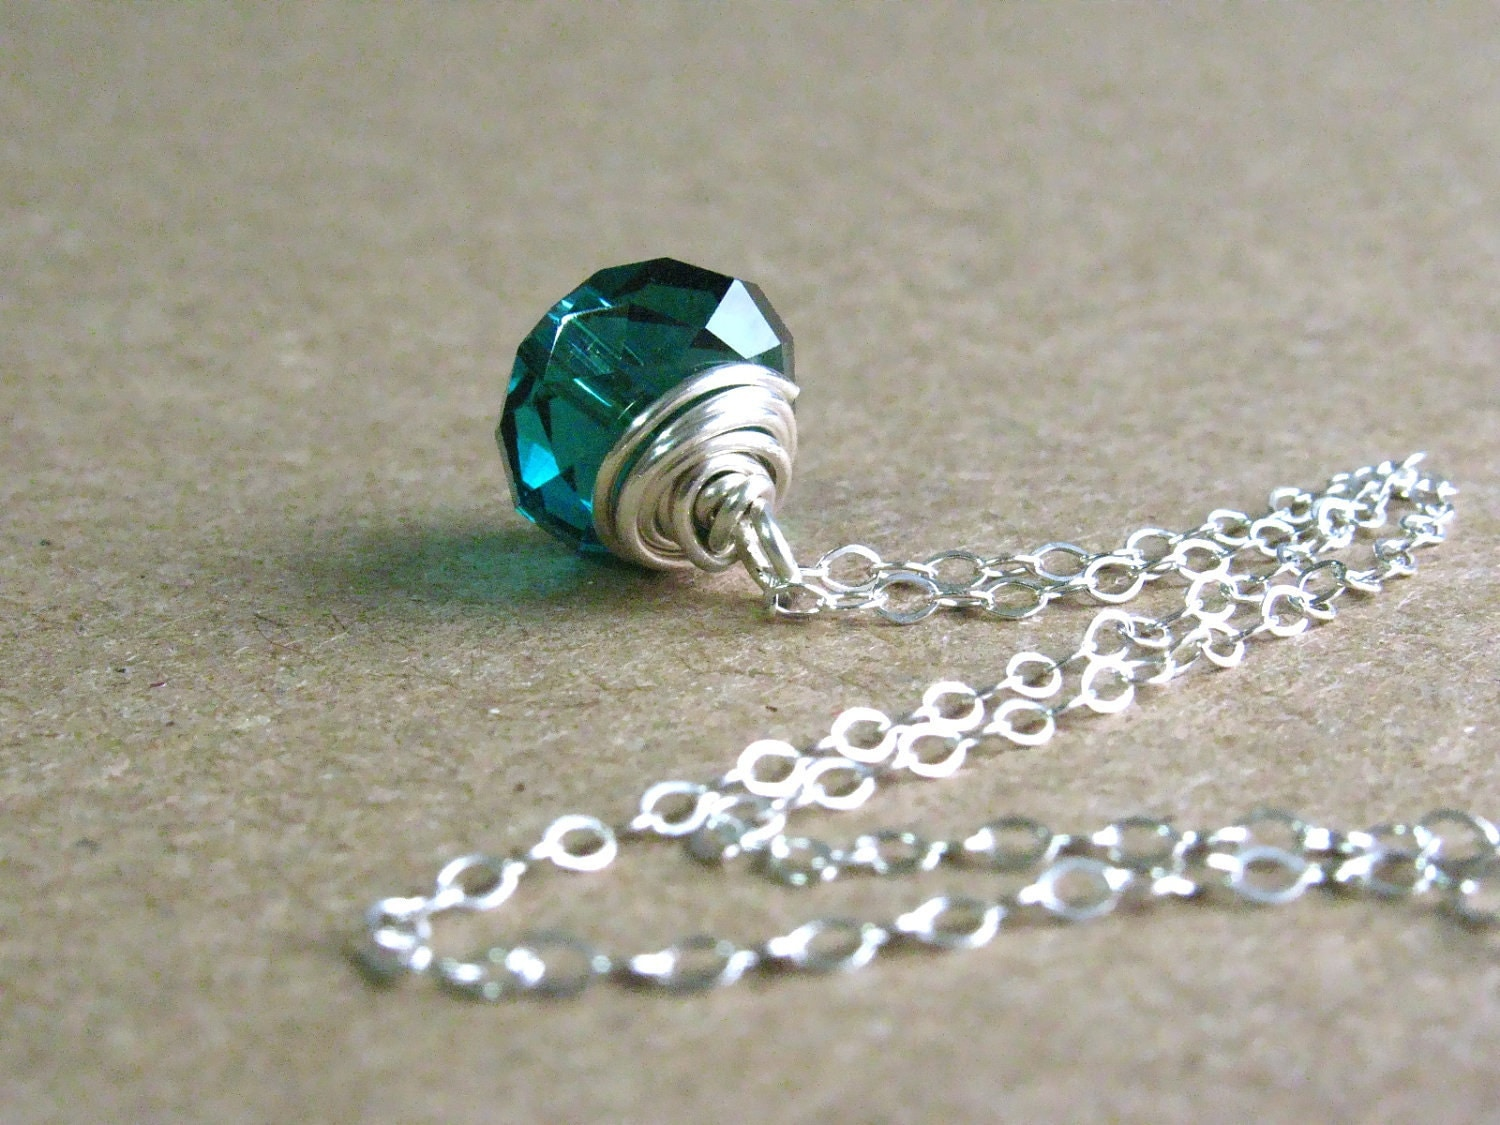 Crystal Necklace - Teal Chinese Crystal on Sterling Silver by Luv Laugh Sparkle